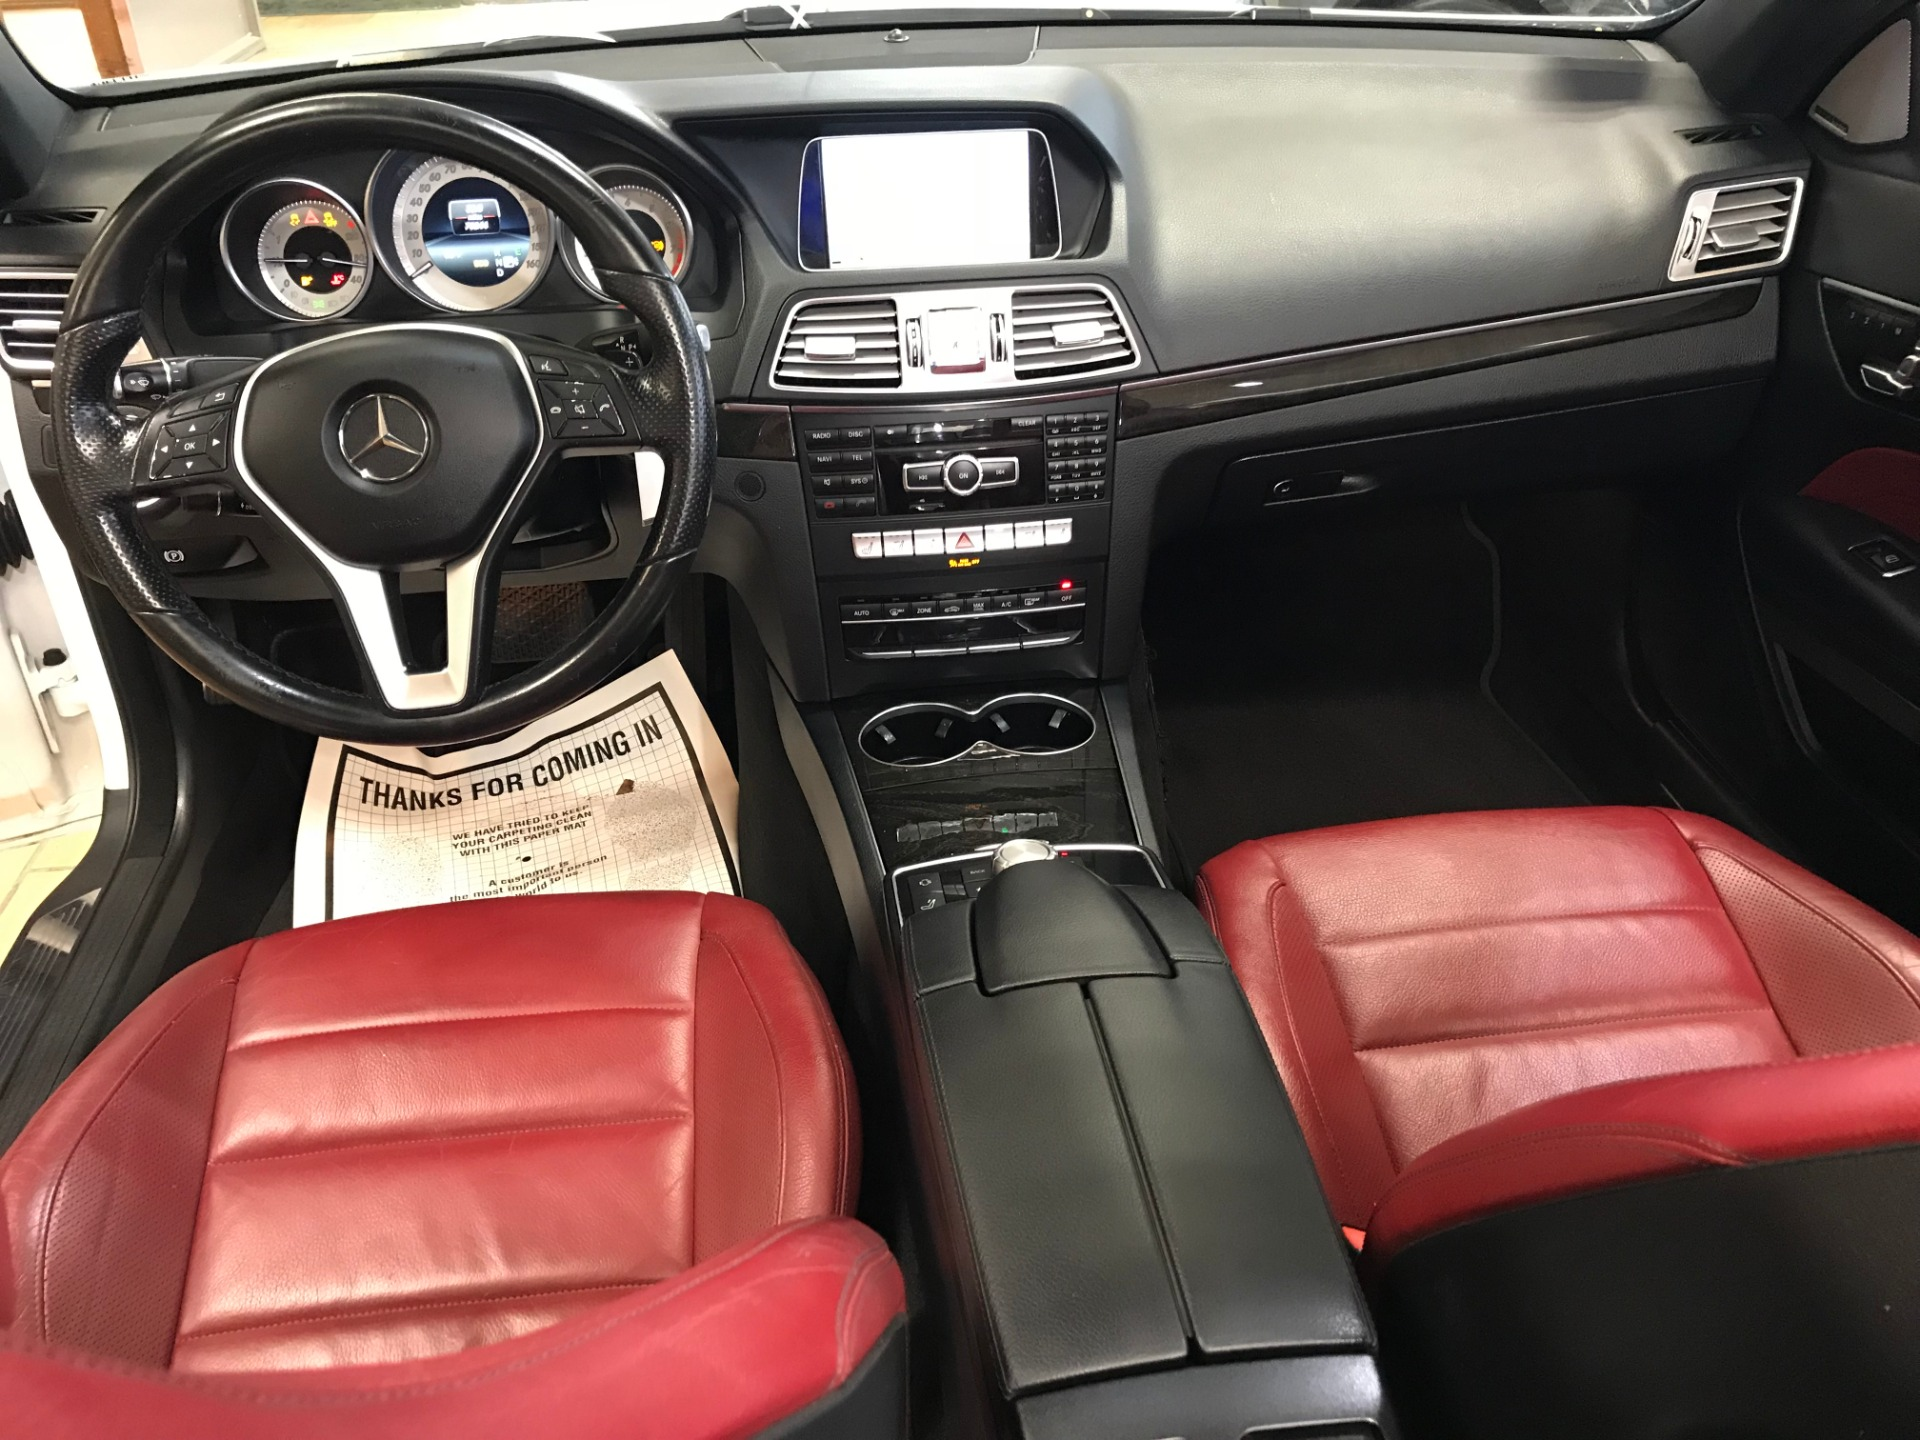 2014 Mercedes E350 For Sale >> Used 2014 Mercedes-Benz E-CLASS E350 For Sale ($27,900) | Executive Auto Sales Stock #1617